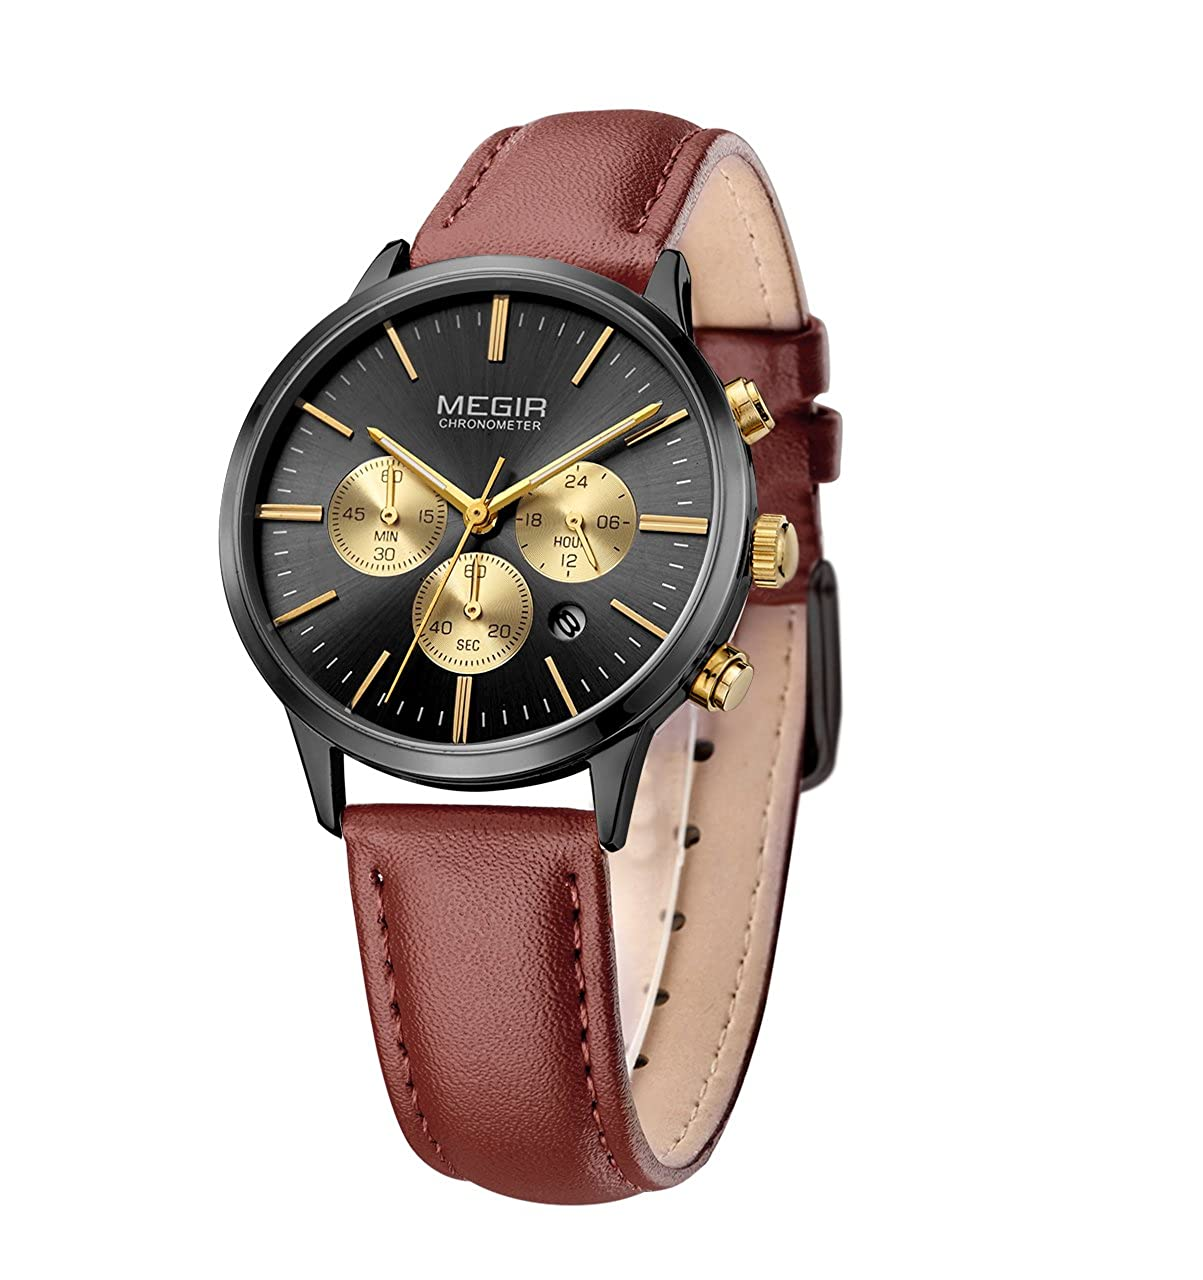 e06be38aa25 Megir Chronograph Date Indicator Brown Leather Strap Quartz Wrist Watch for Women  Ladies Fashion Gold Rose Wristwatch (BLACK)  Amazon.co.uk  Watches